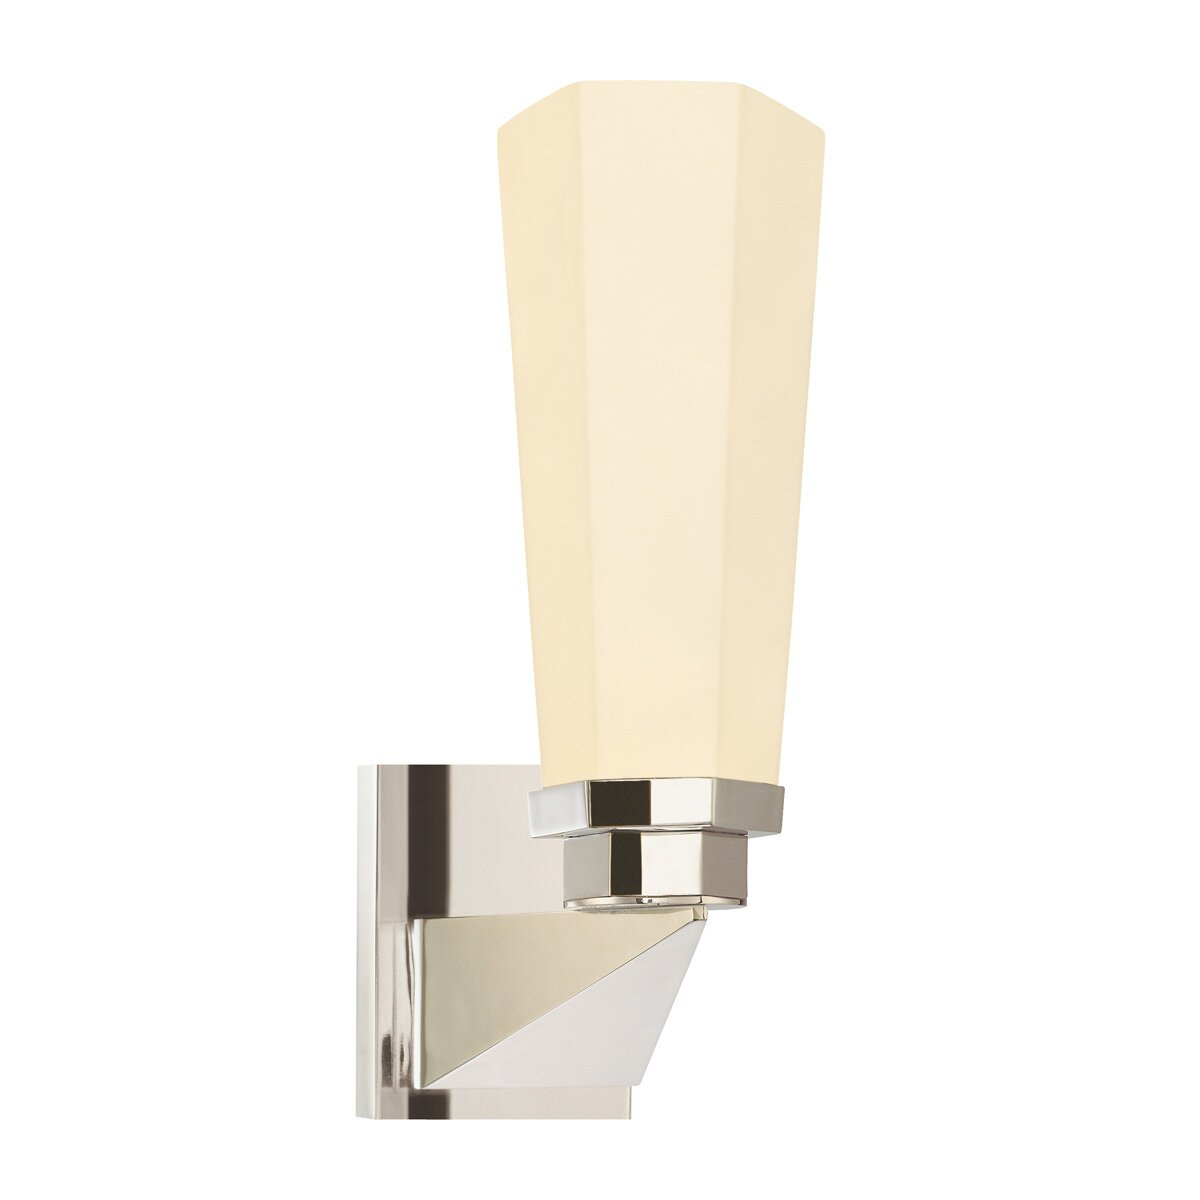 Wall Sconces At Wayfair : Forma 1 Light Wall Sconce Wayfair